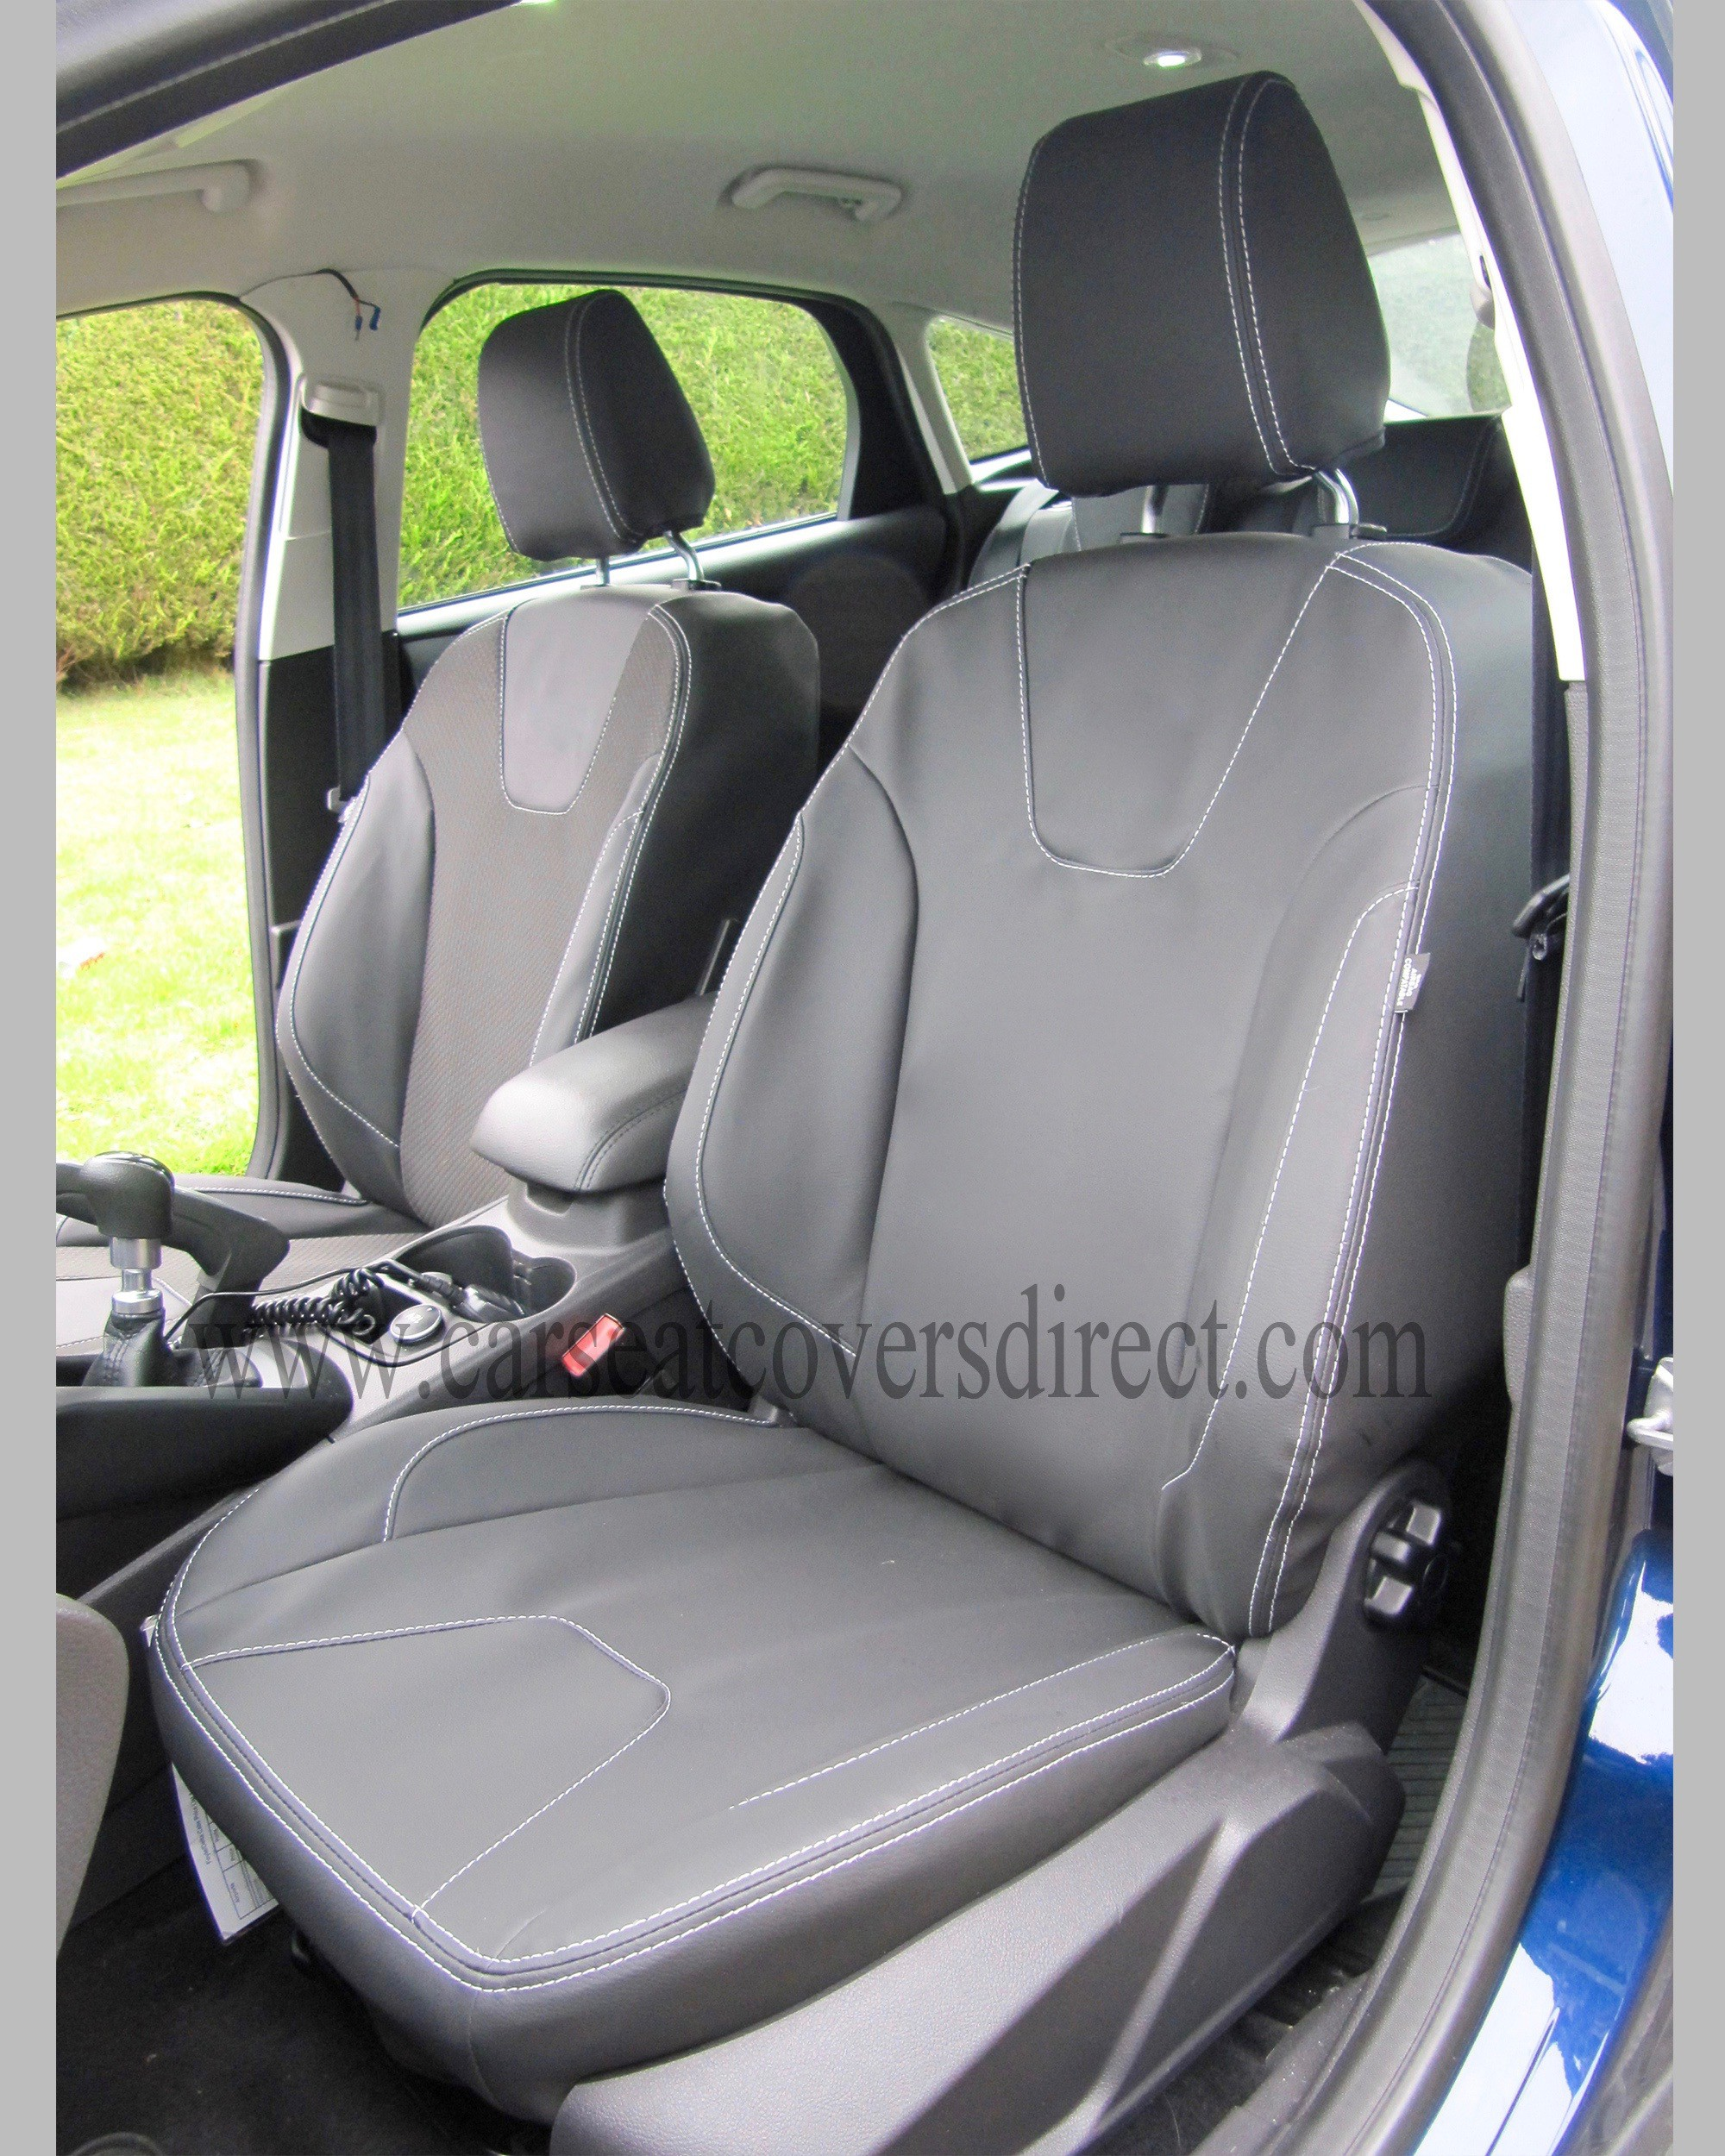 Ford C Max Leather Seats: Seat Covers Ford Focus